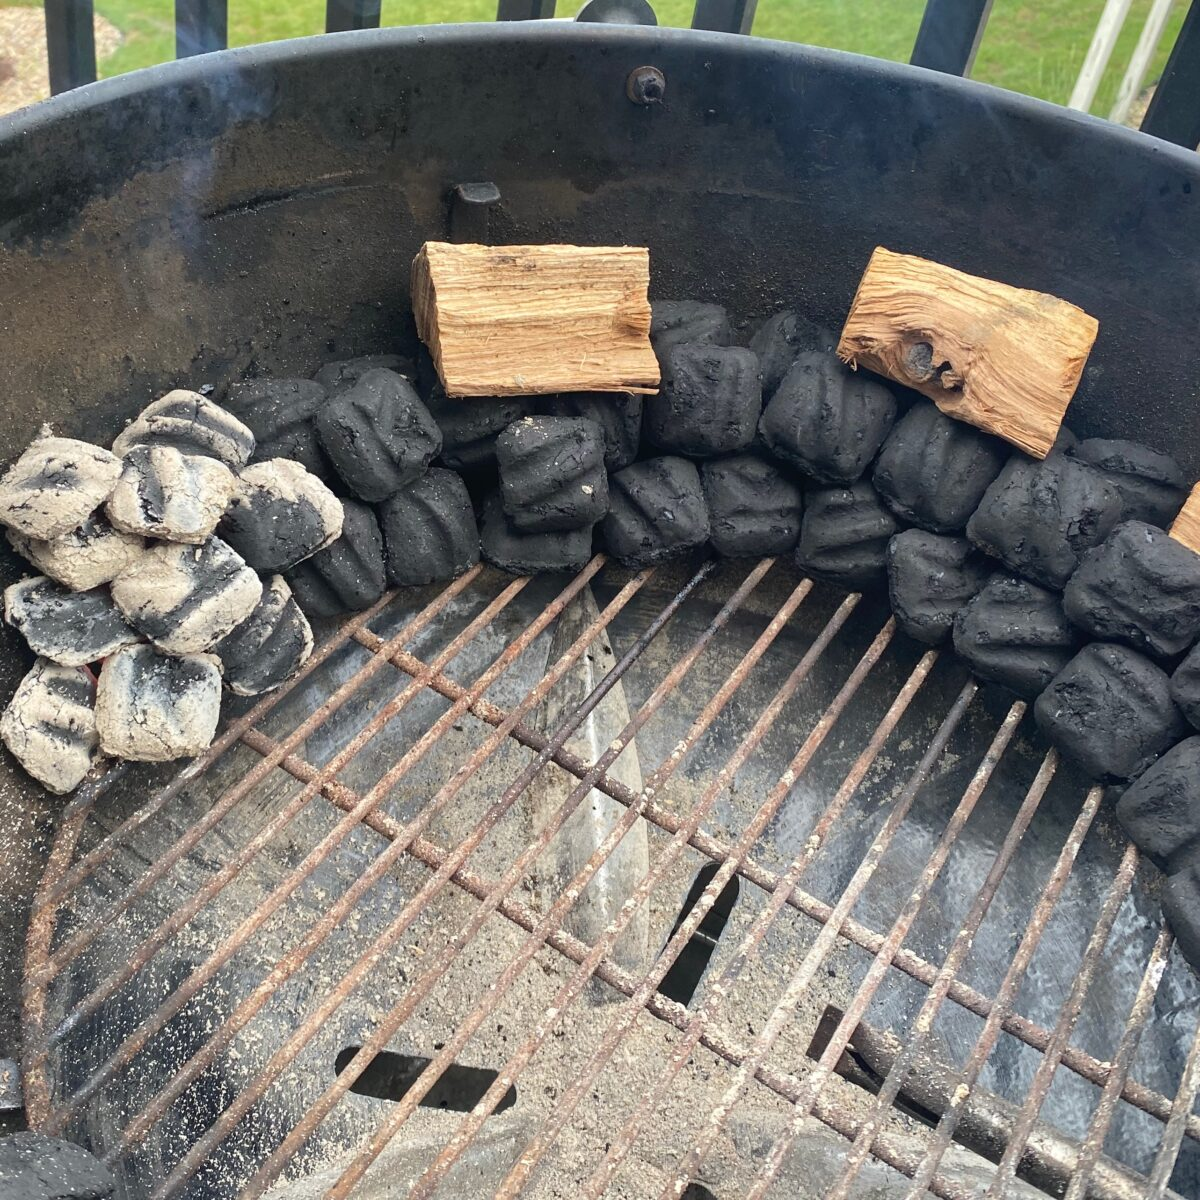 Close up view of the proper charcoal and wood set up to smoke on a charcoal grill.